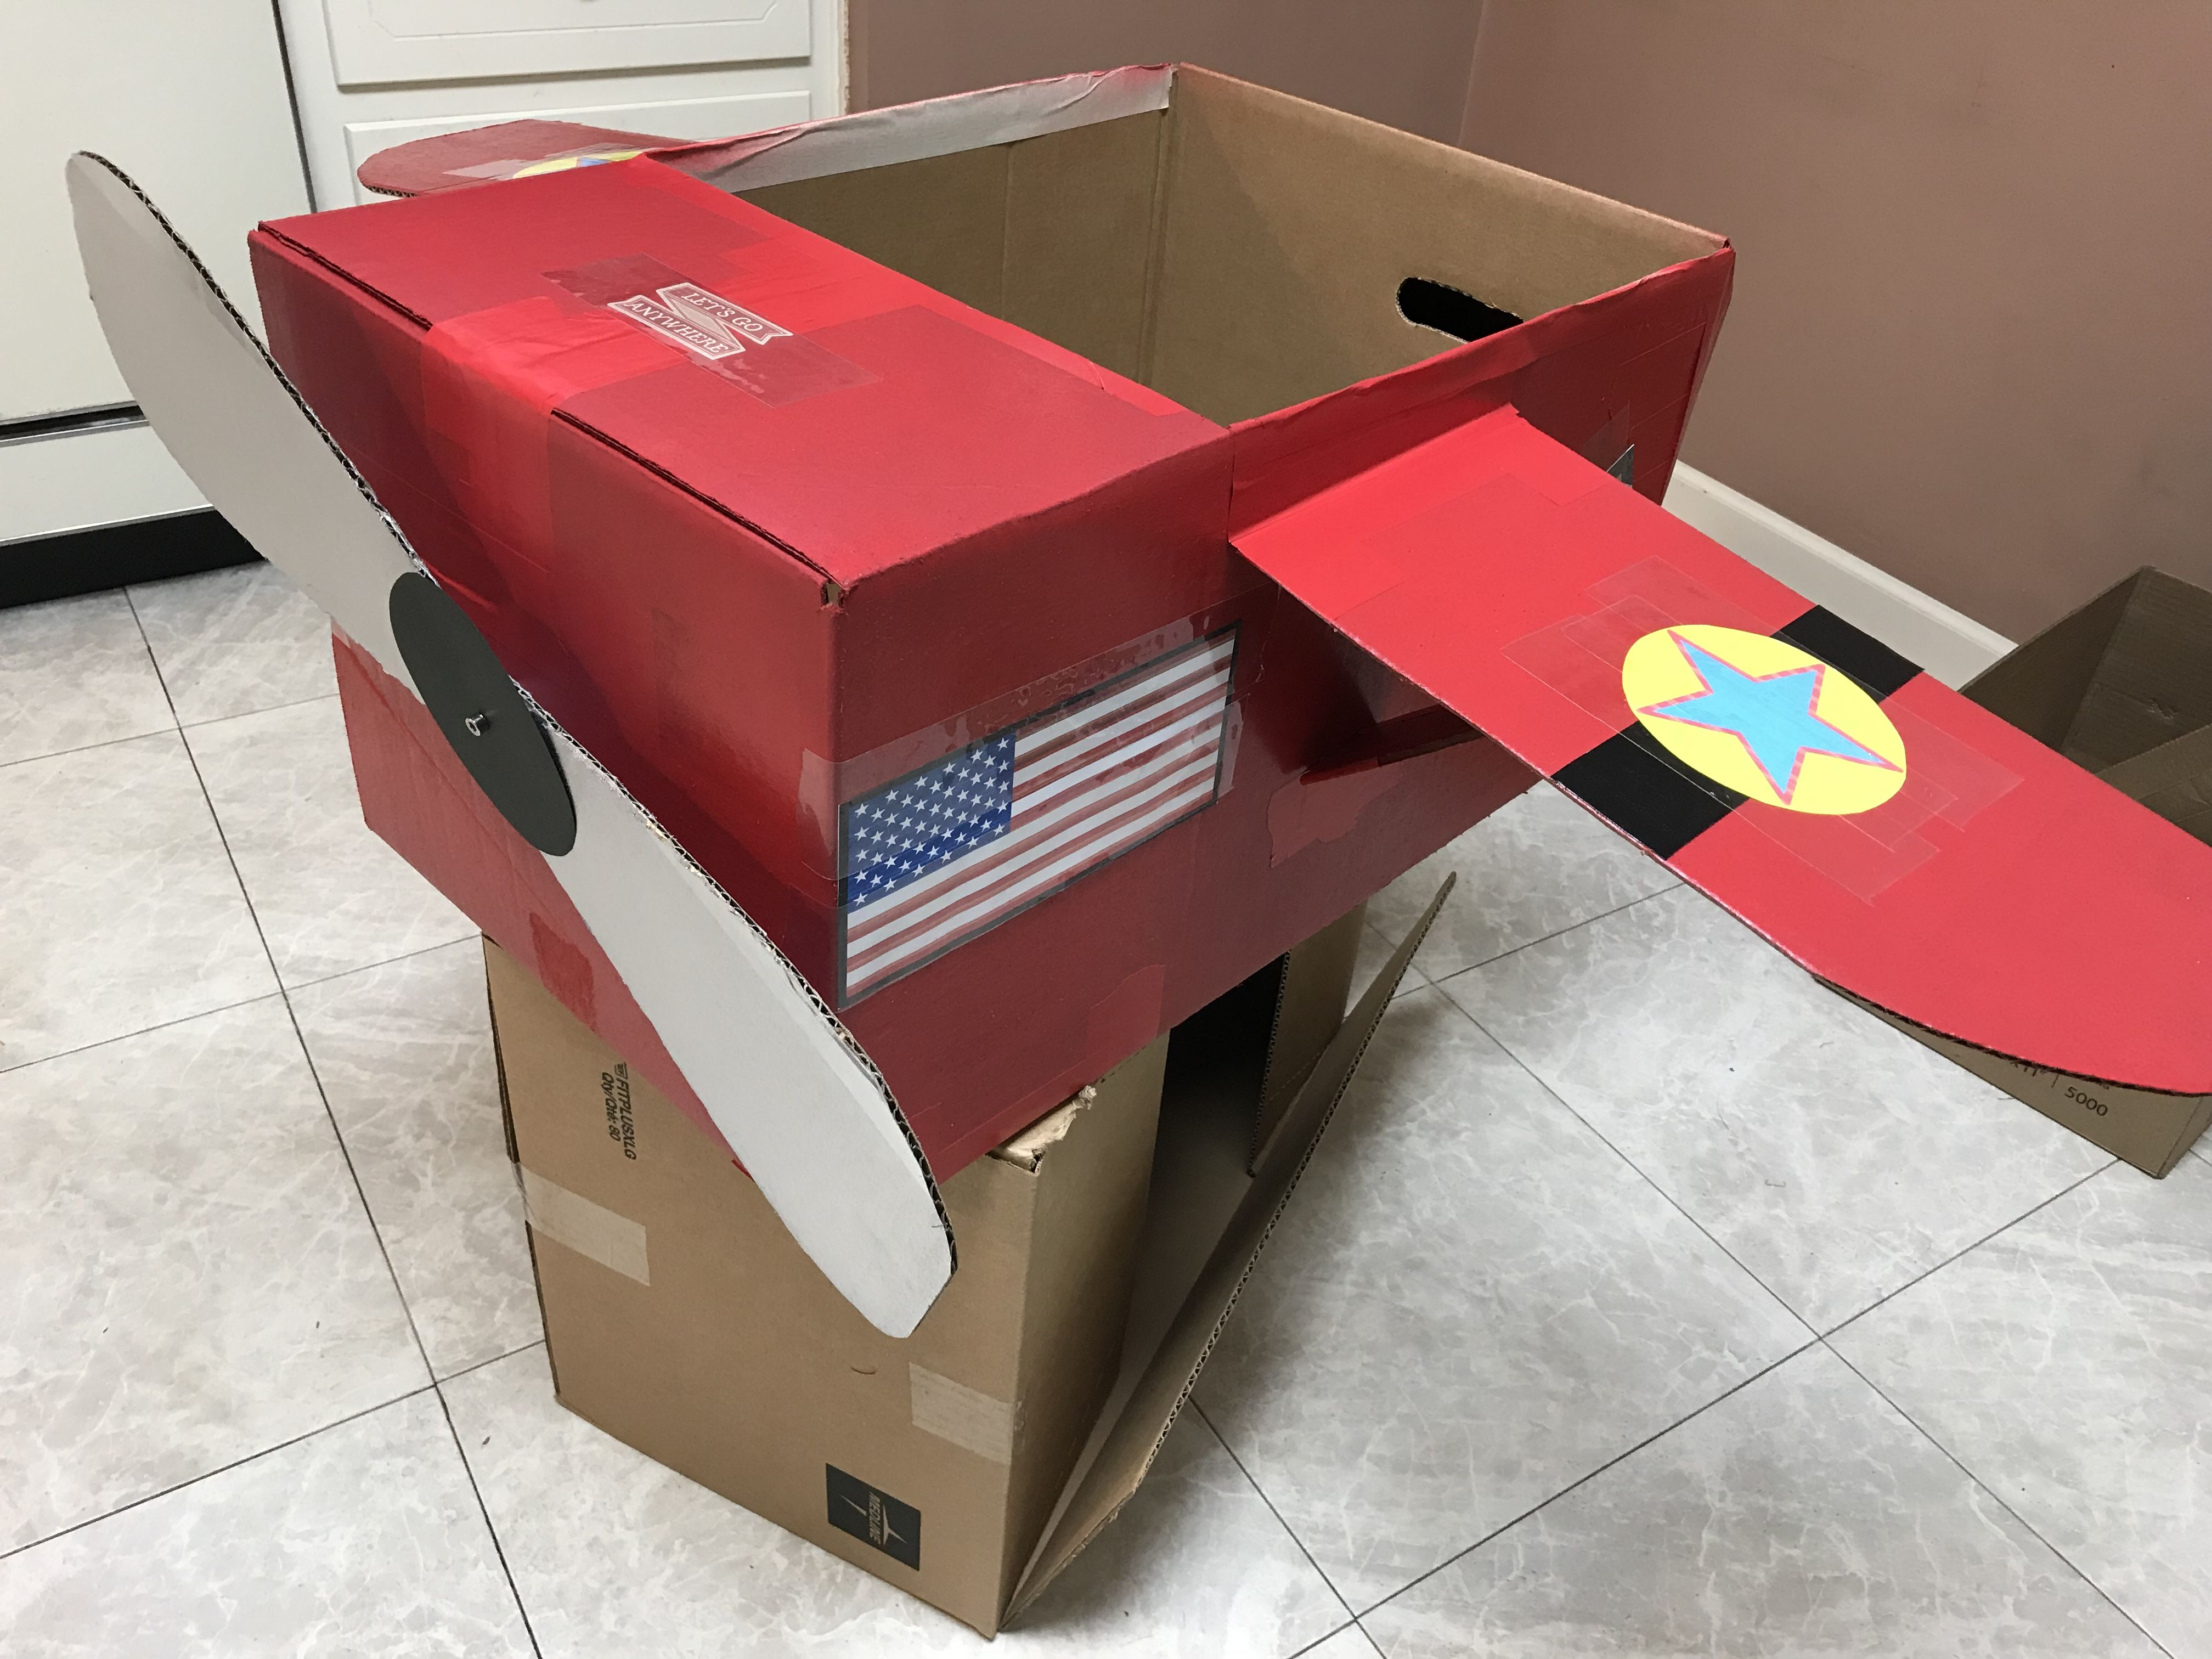 Cardboard Plane For My Amelia Earhart Costume Amelia Earhart Costume Amelia Earhart Amelia Earhart Projects